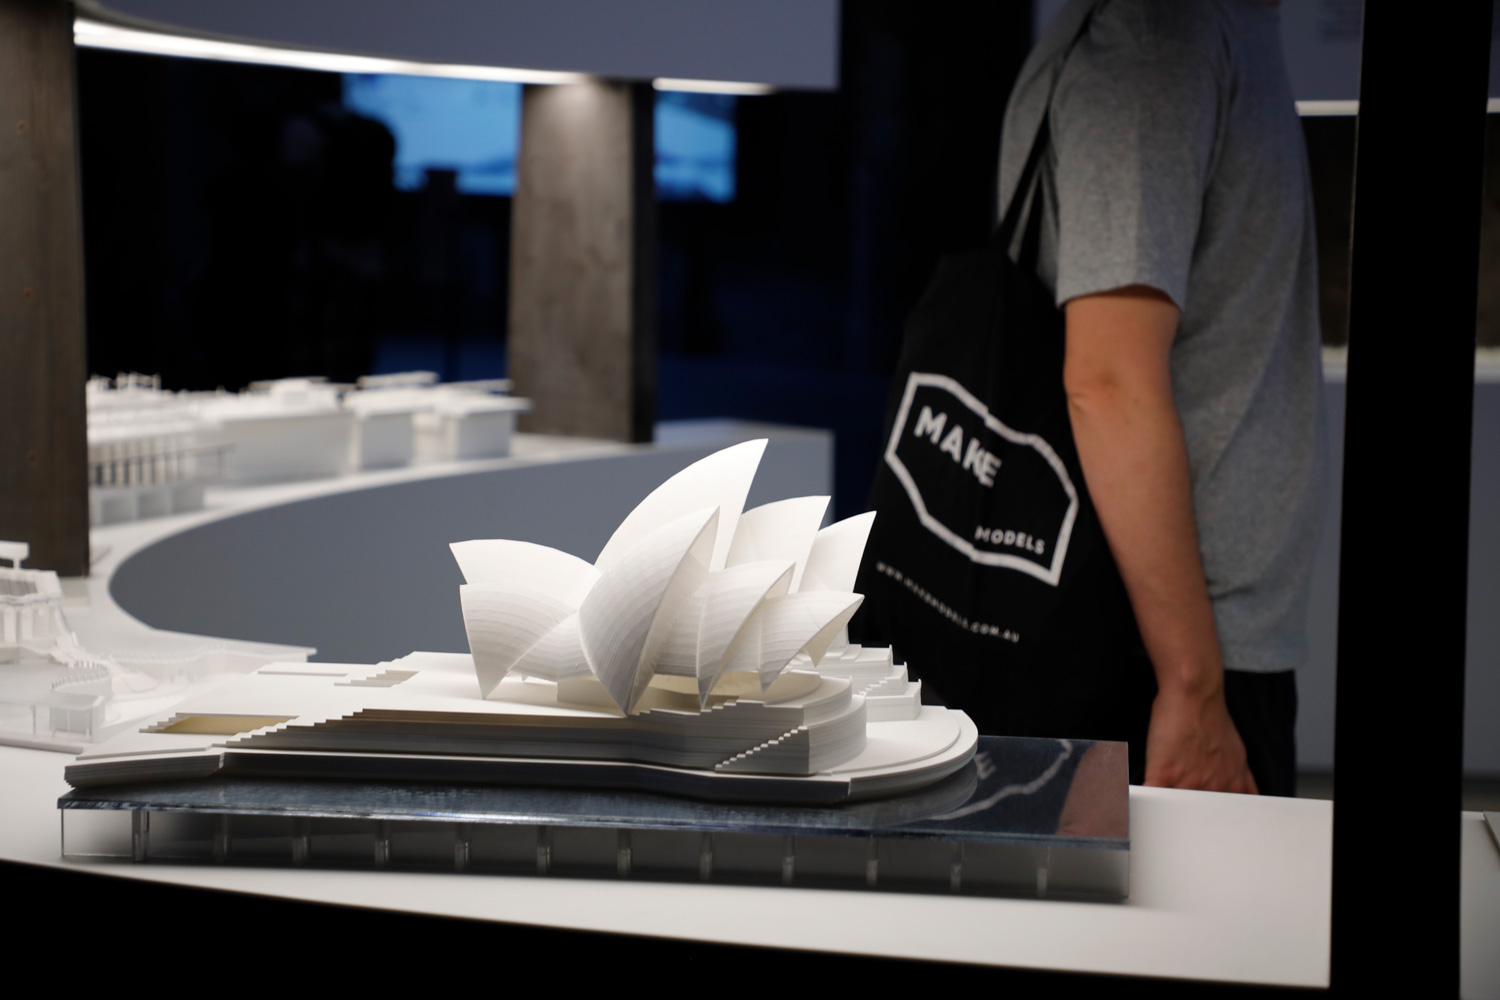 Experiencing the Architectural Biennale as a Model Maker